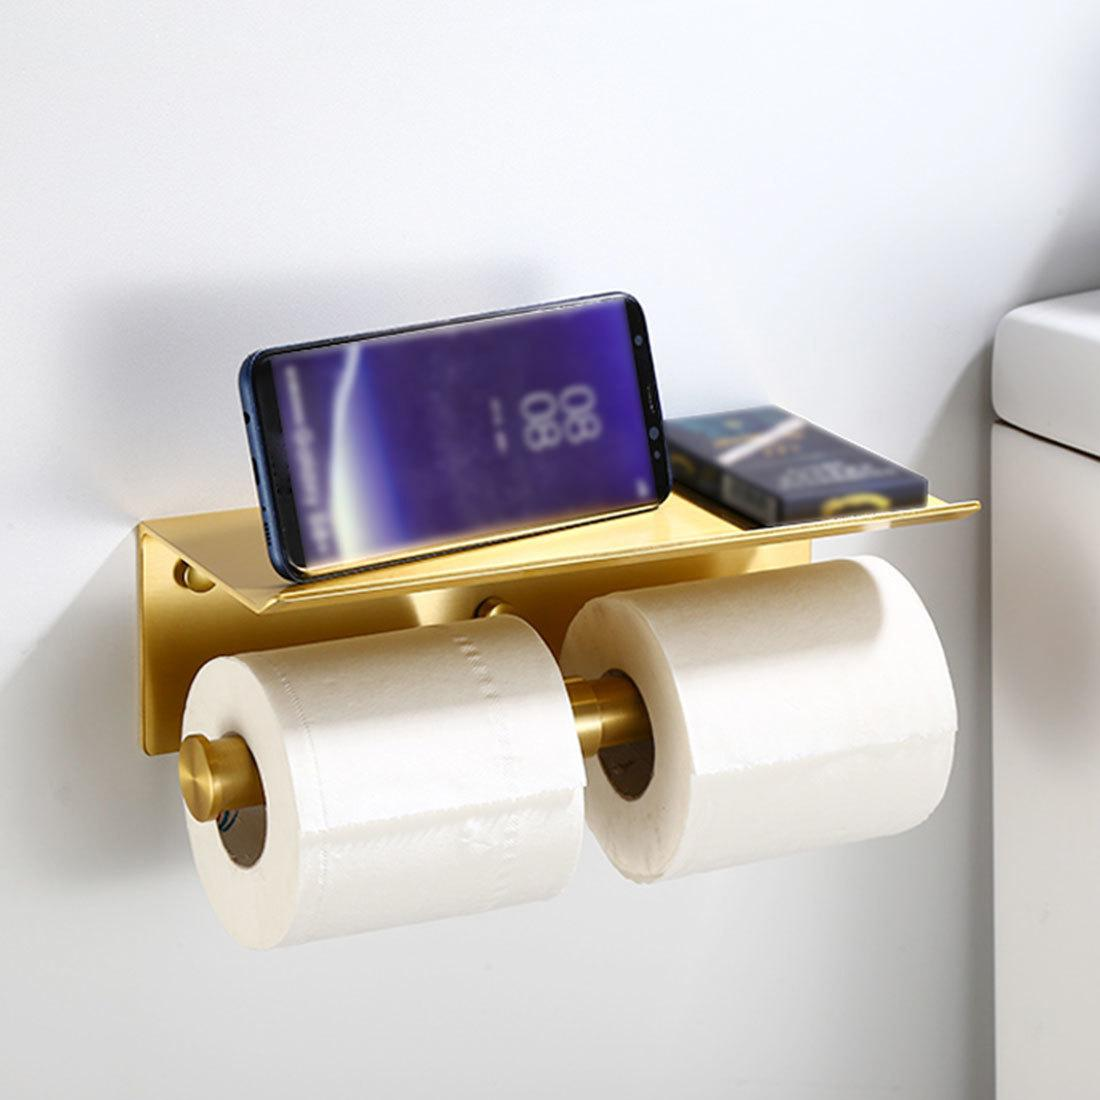 2020 Kitchen Wall Mounted Black Toilet Paper Towel Roll Holder With Cell Phone Storage Rack Bathroom Accessories From Shopping8mall 10 08 Dhgate Com